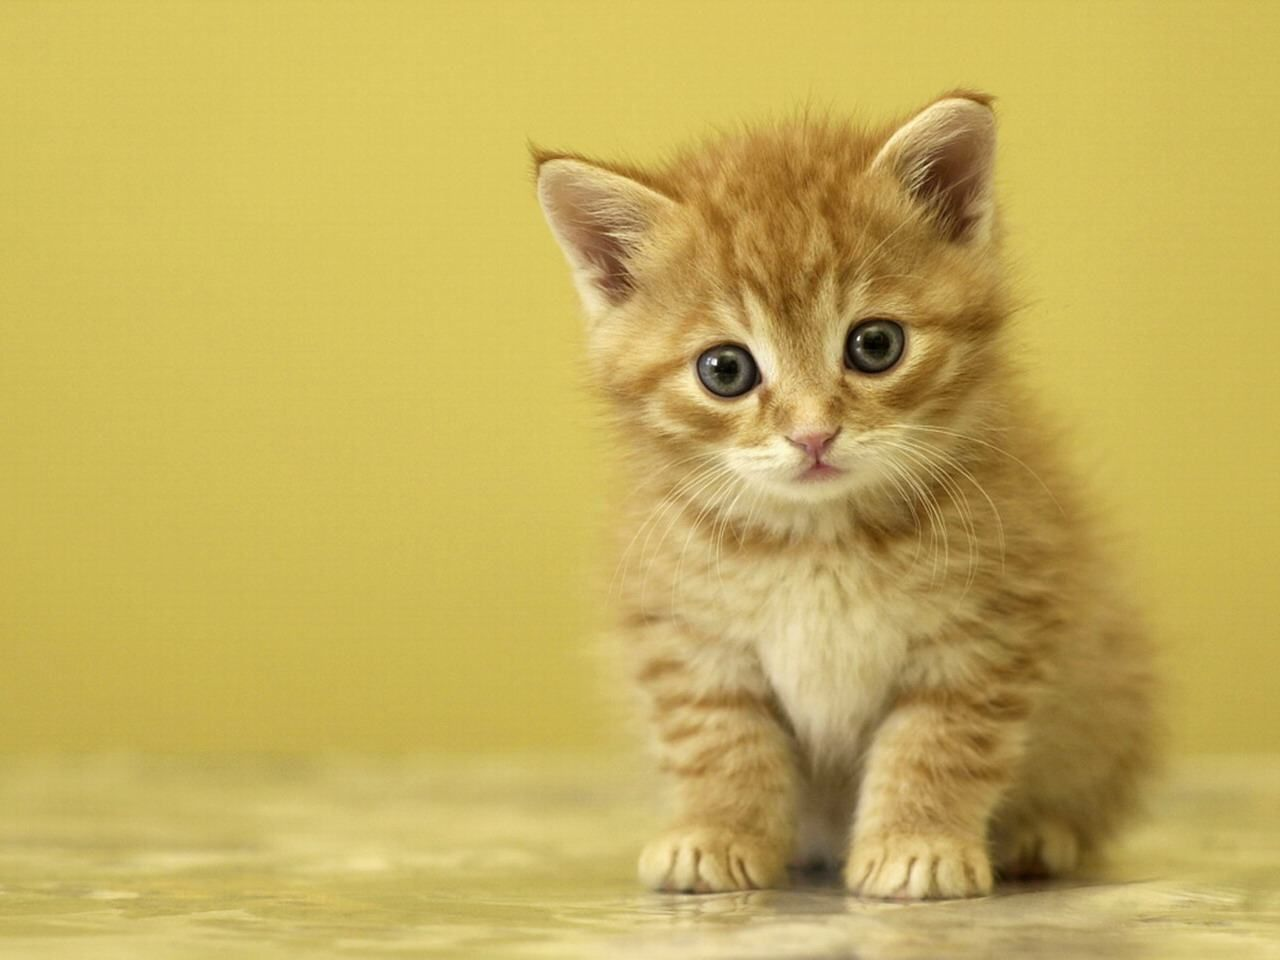 Cute Baby Wallpapers Download Free Cute Baby Cute Baby Animals